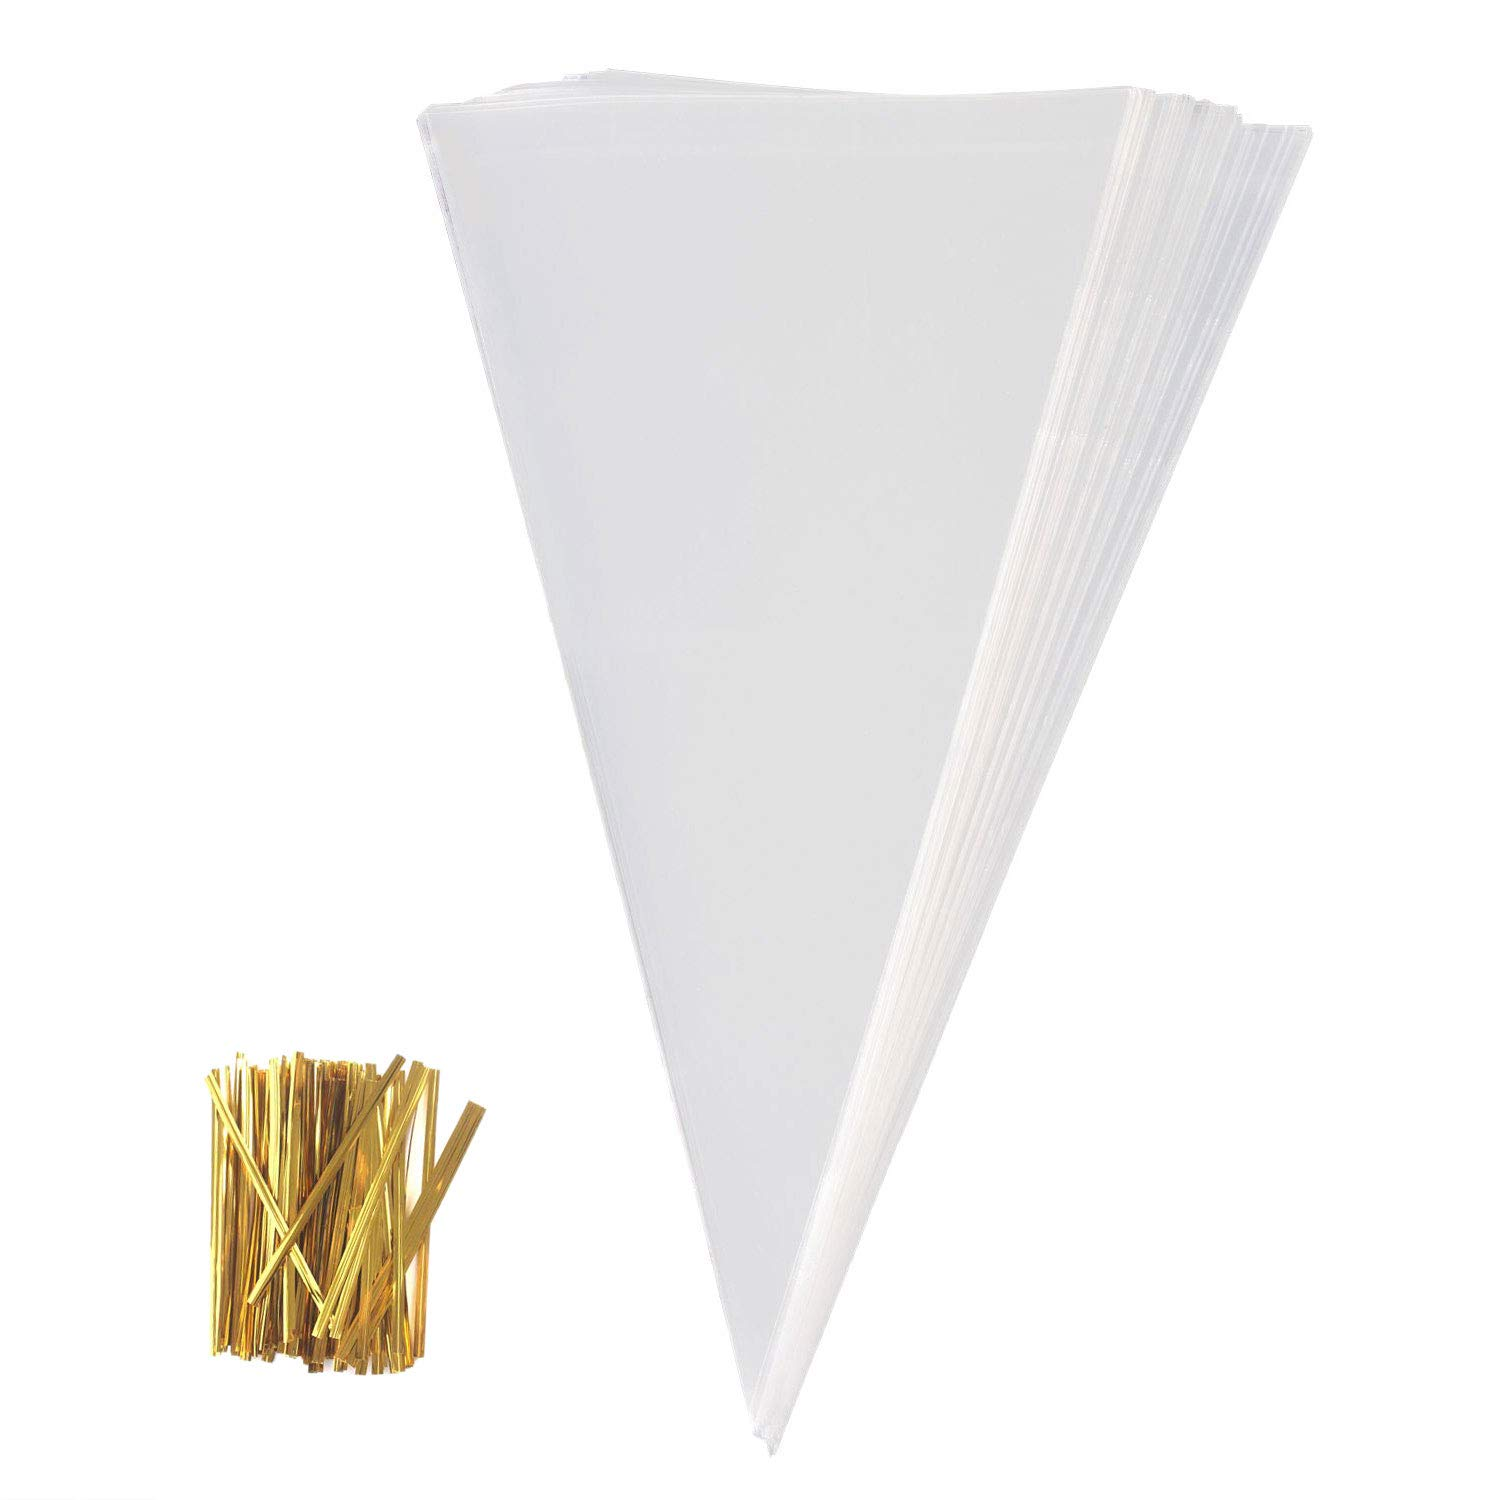 ExeQianming Cellophane Bag Sweets Clear Cone Bags and Ties for Party Christmas Festivals 50 Pcs